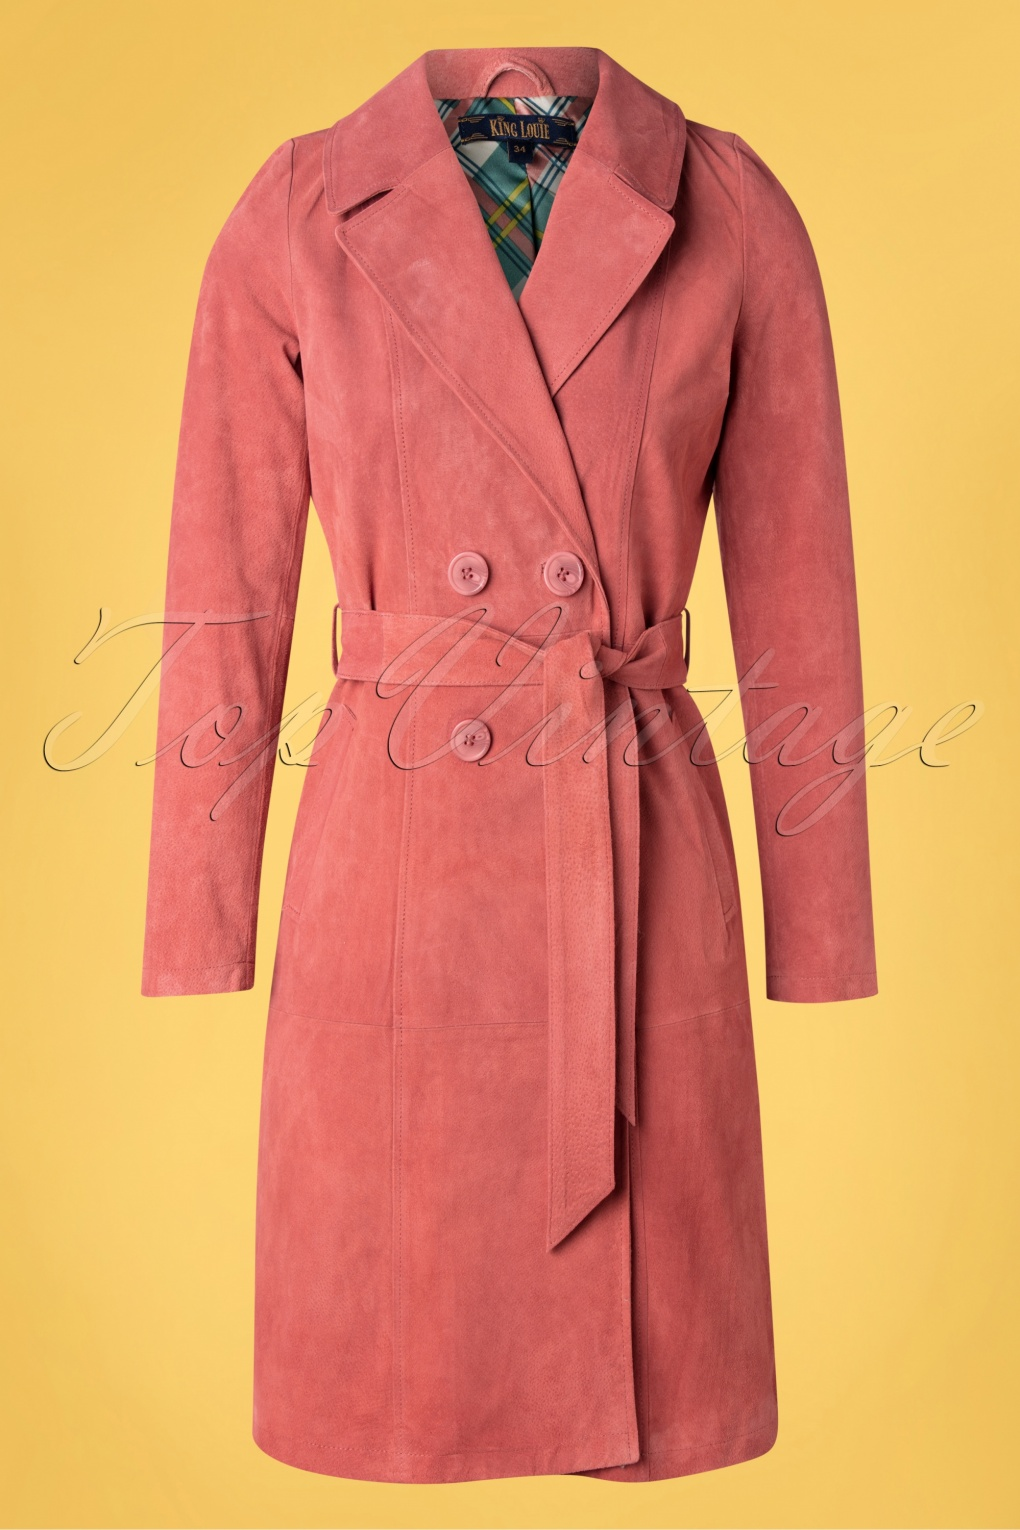 Vintage Coats & Jackets | Retro Coats and Jackets 60s Mia Suede Coat in Dusty Rose £219.30 AT vintagedancer.com